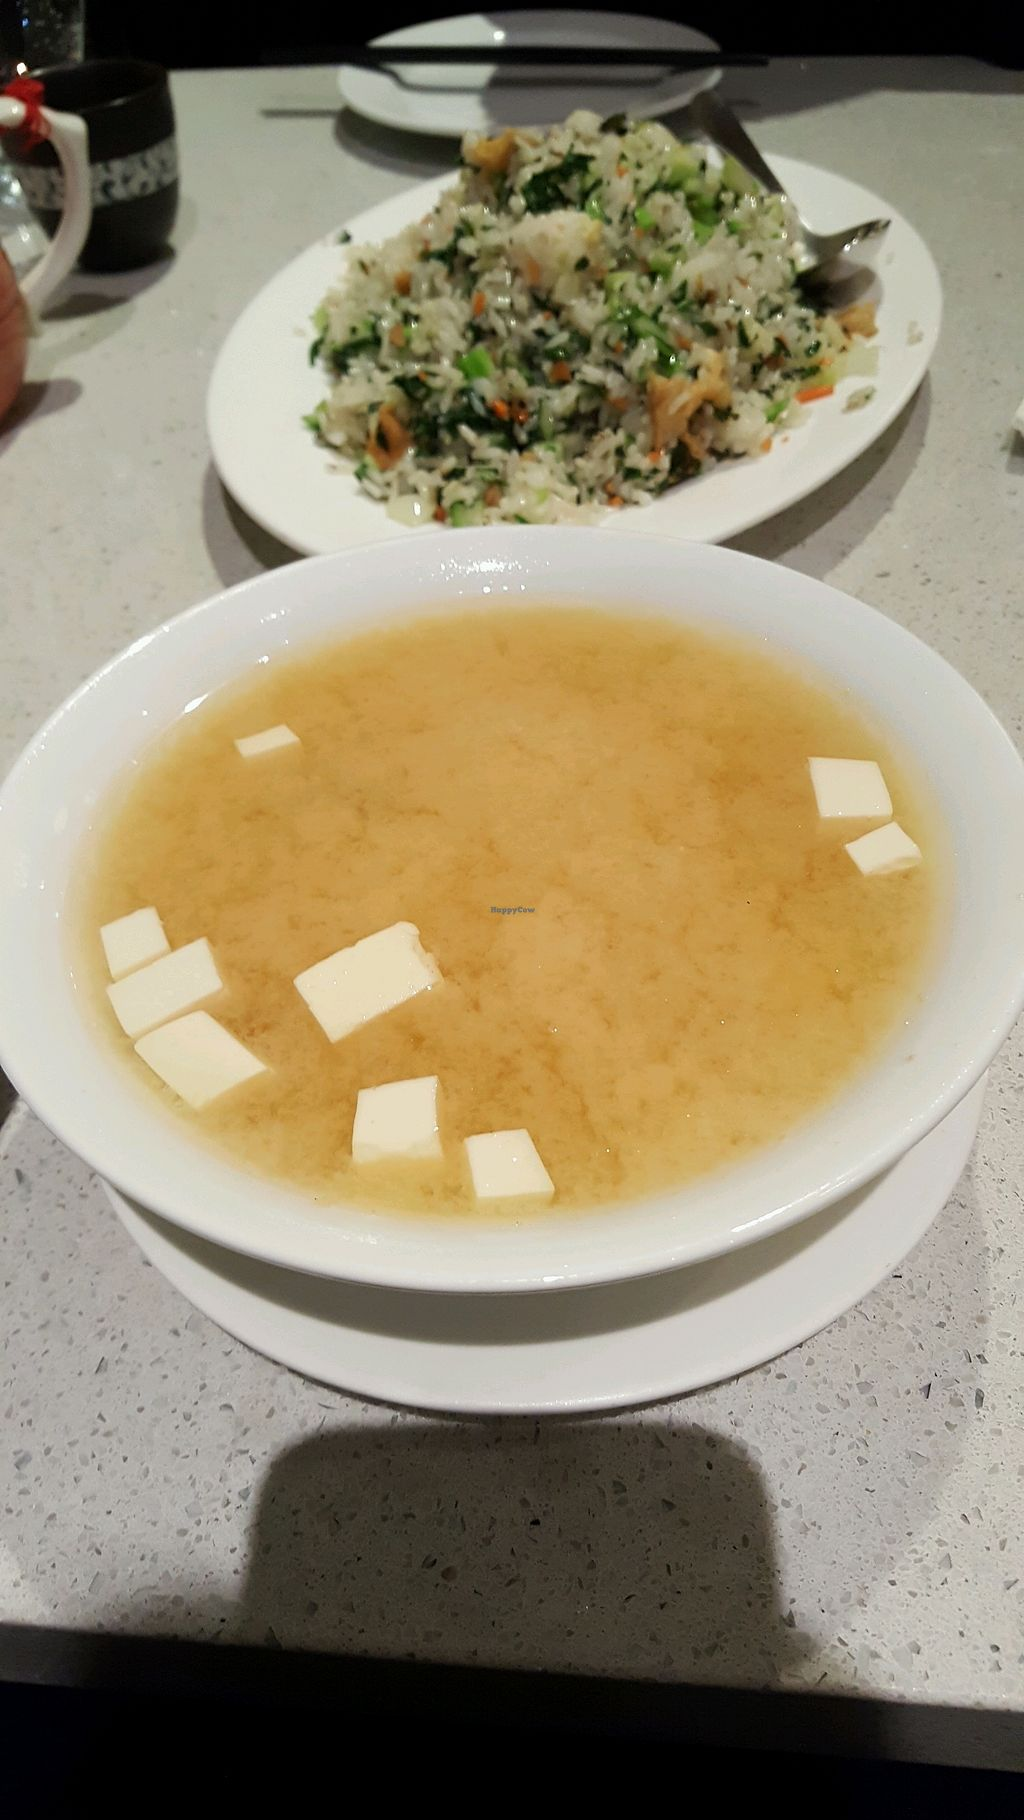 """Photo of King's Cafe  by <a href=""""/members/profile/Brit87"""">Brit87</a> <br/>miso soup and fried rice <br/> February 18, 2018  - <a href='/contact/abuse/image/17836/360665'>Report</a>"""